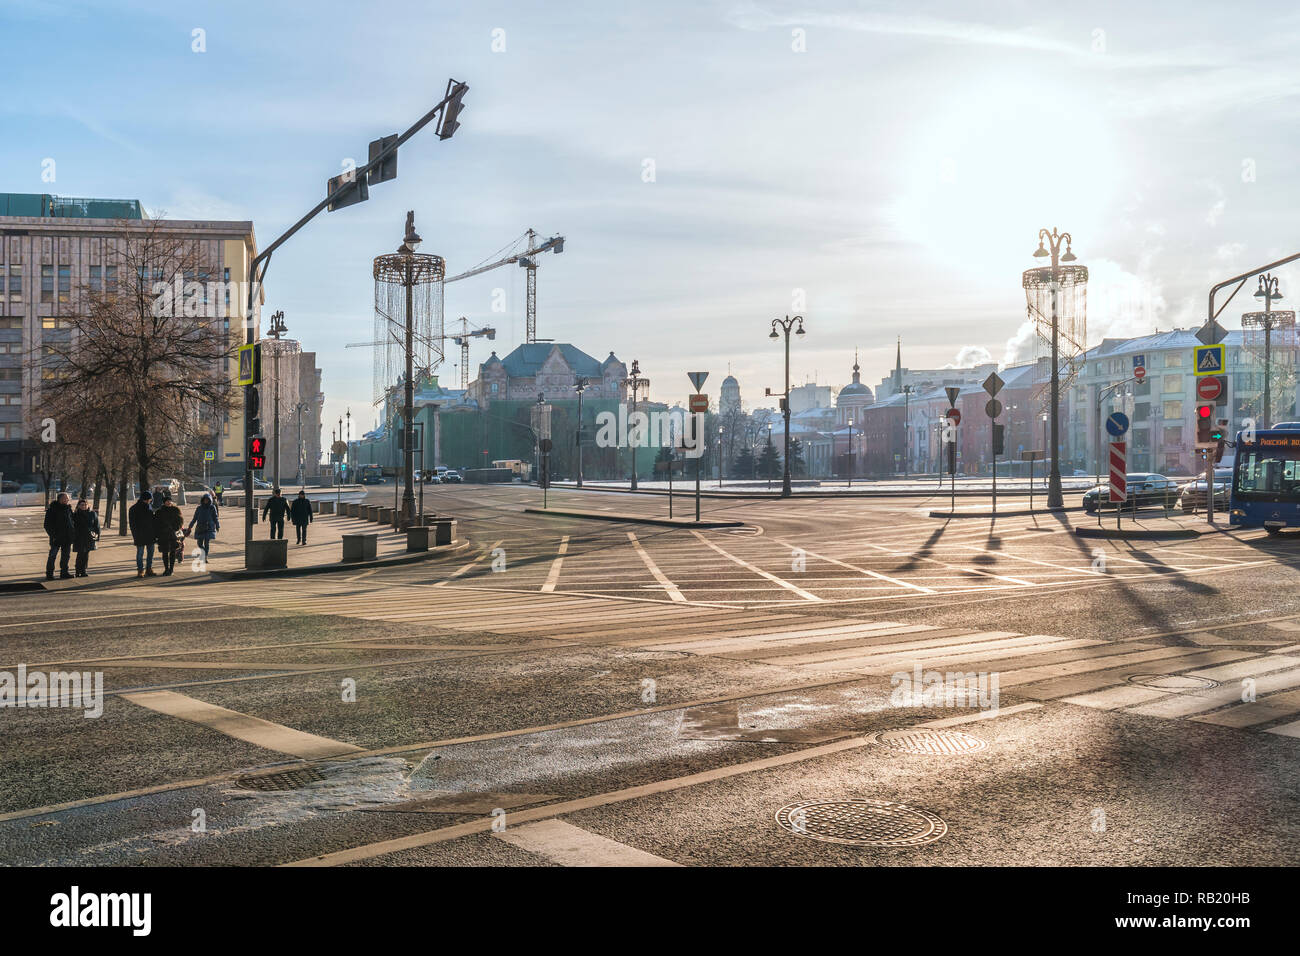 MOSCOW, RUSSIA - December 01.2018: Lubyanka Square, one of the oldest squares of the city, the former Dzerzhinsky Square - Stock Image